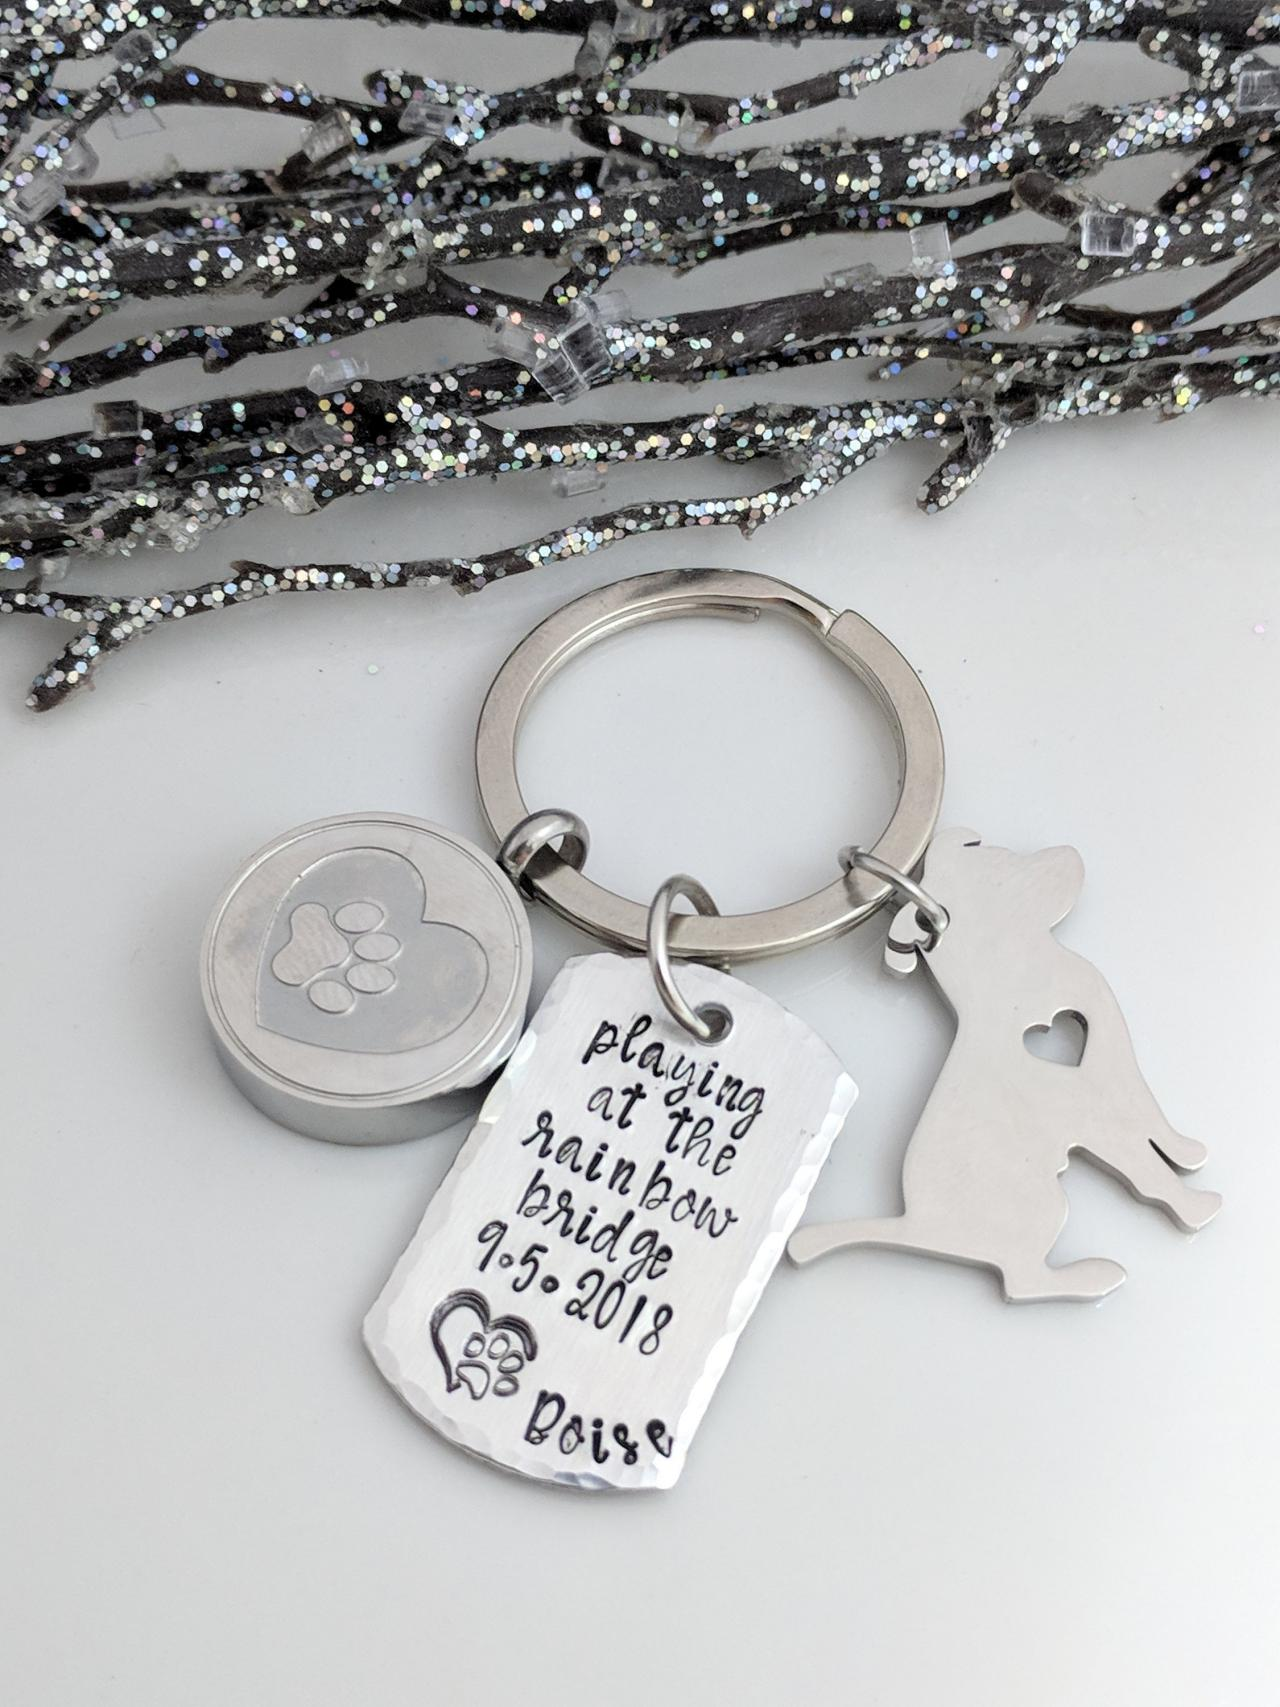 Hand stamped keychain-Playing at the Rainbow Bridge- Pet Memorial- Dog Ashes Holder- Dog Paw Urn- Personalized- Pet Loss Keychain- Pet Loss Gifts- Loss of Dog